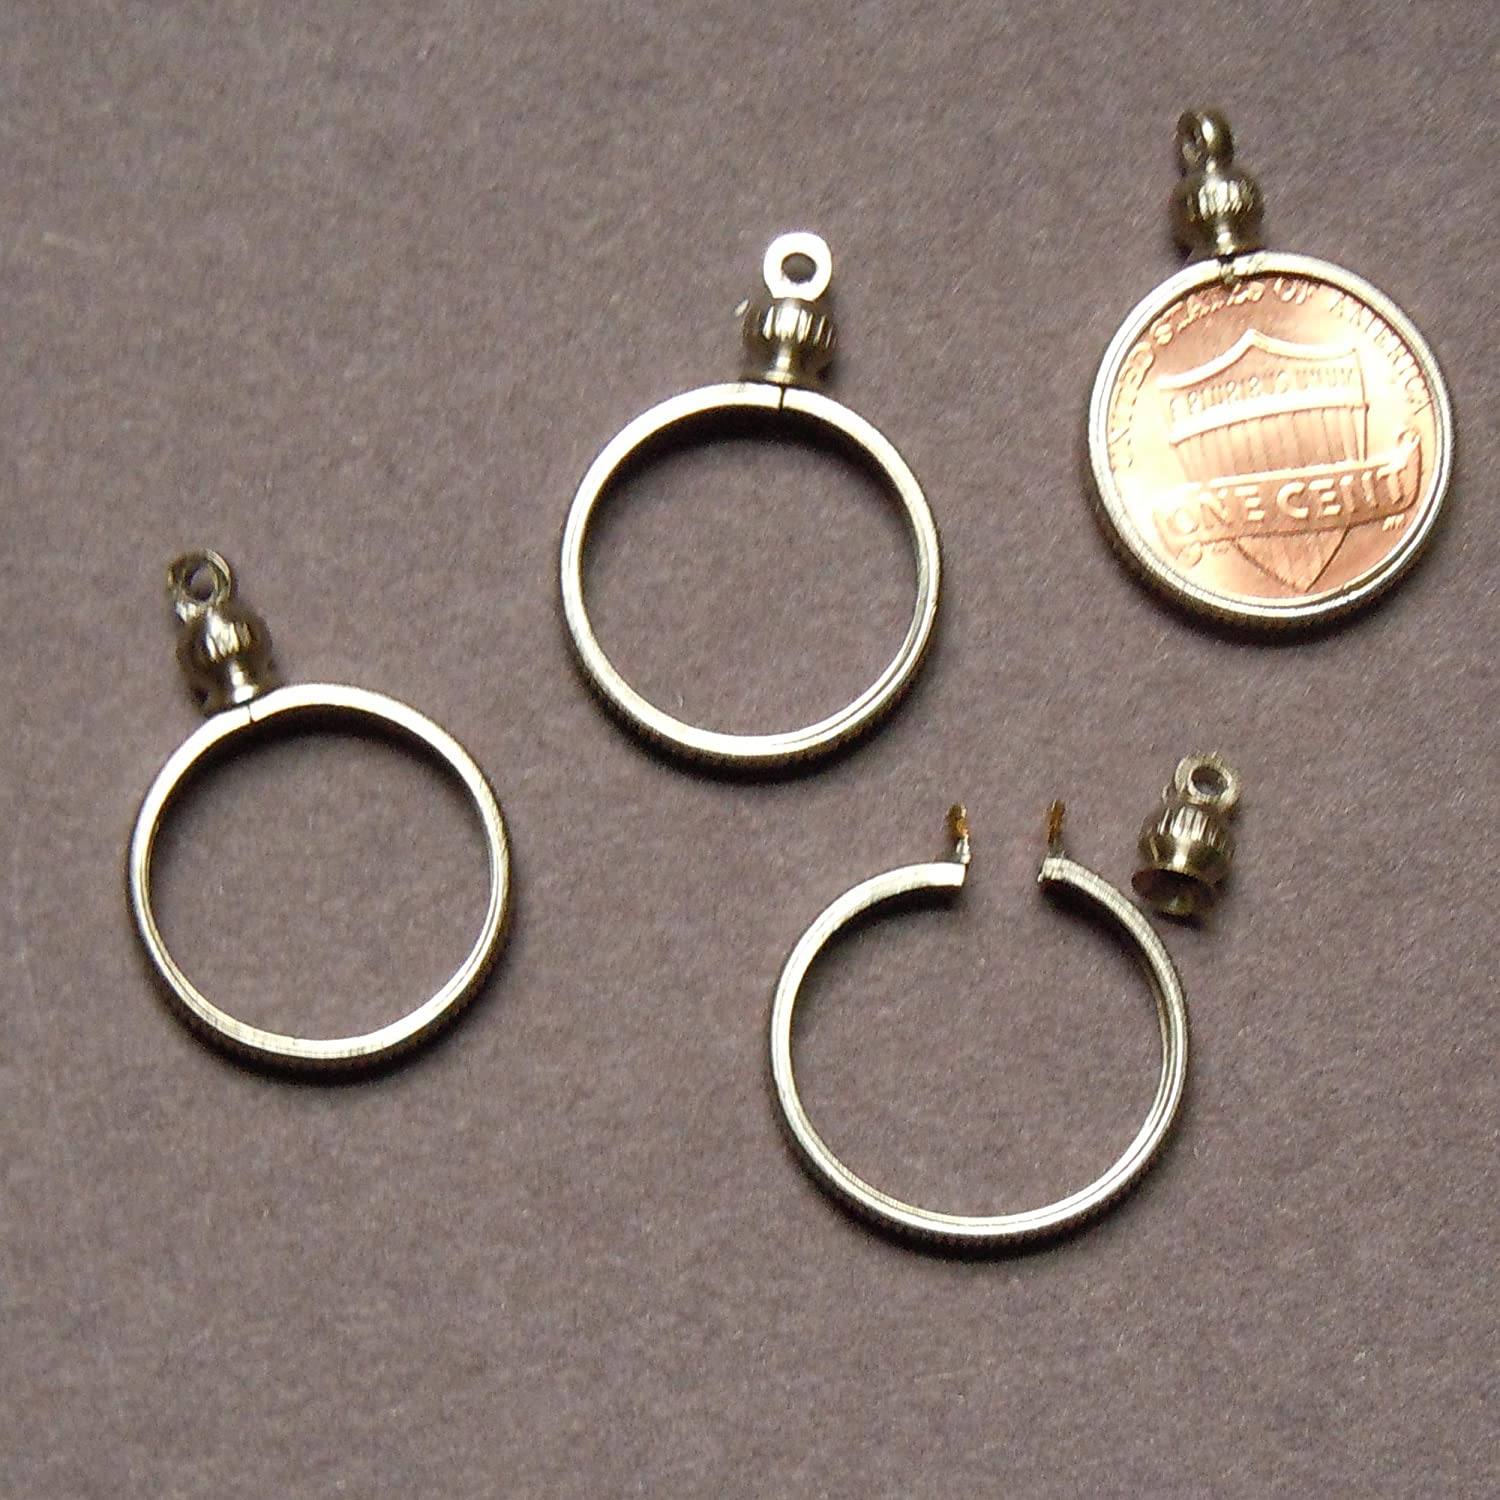 1 cent / USA PENNY Coin Holder Bezel ~ for charm, necklace, pendant, display (Pack of 4) 9782-32198